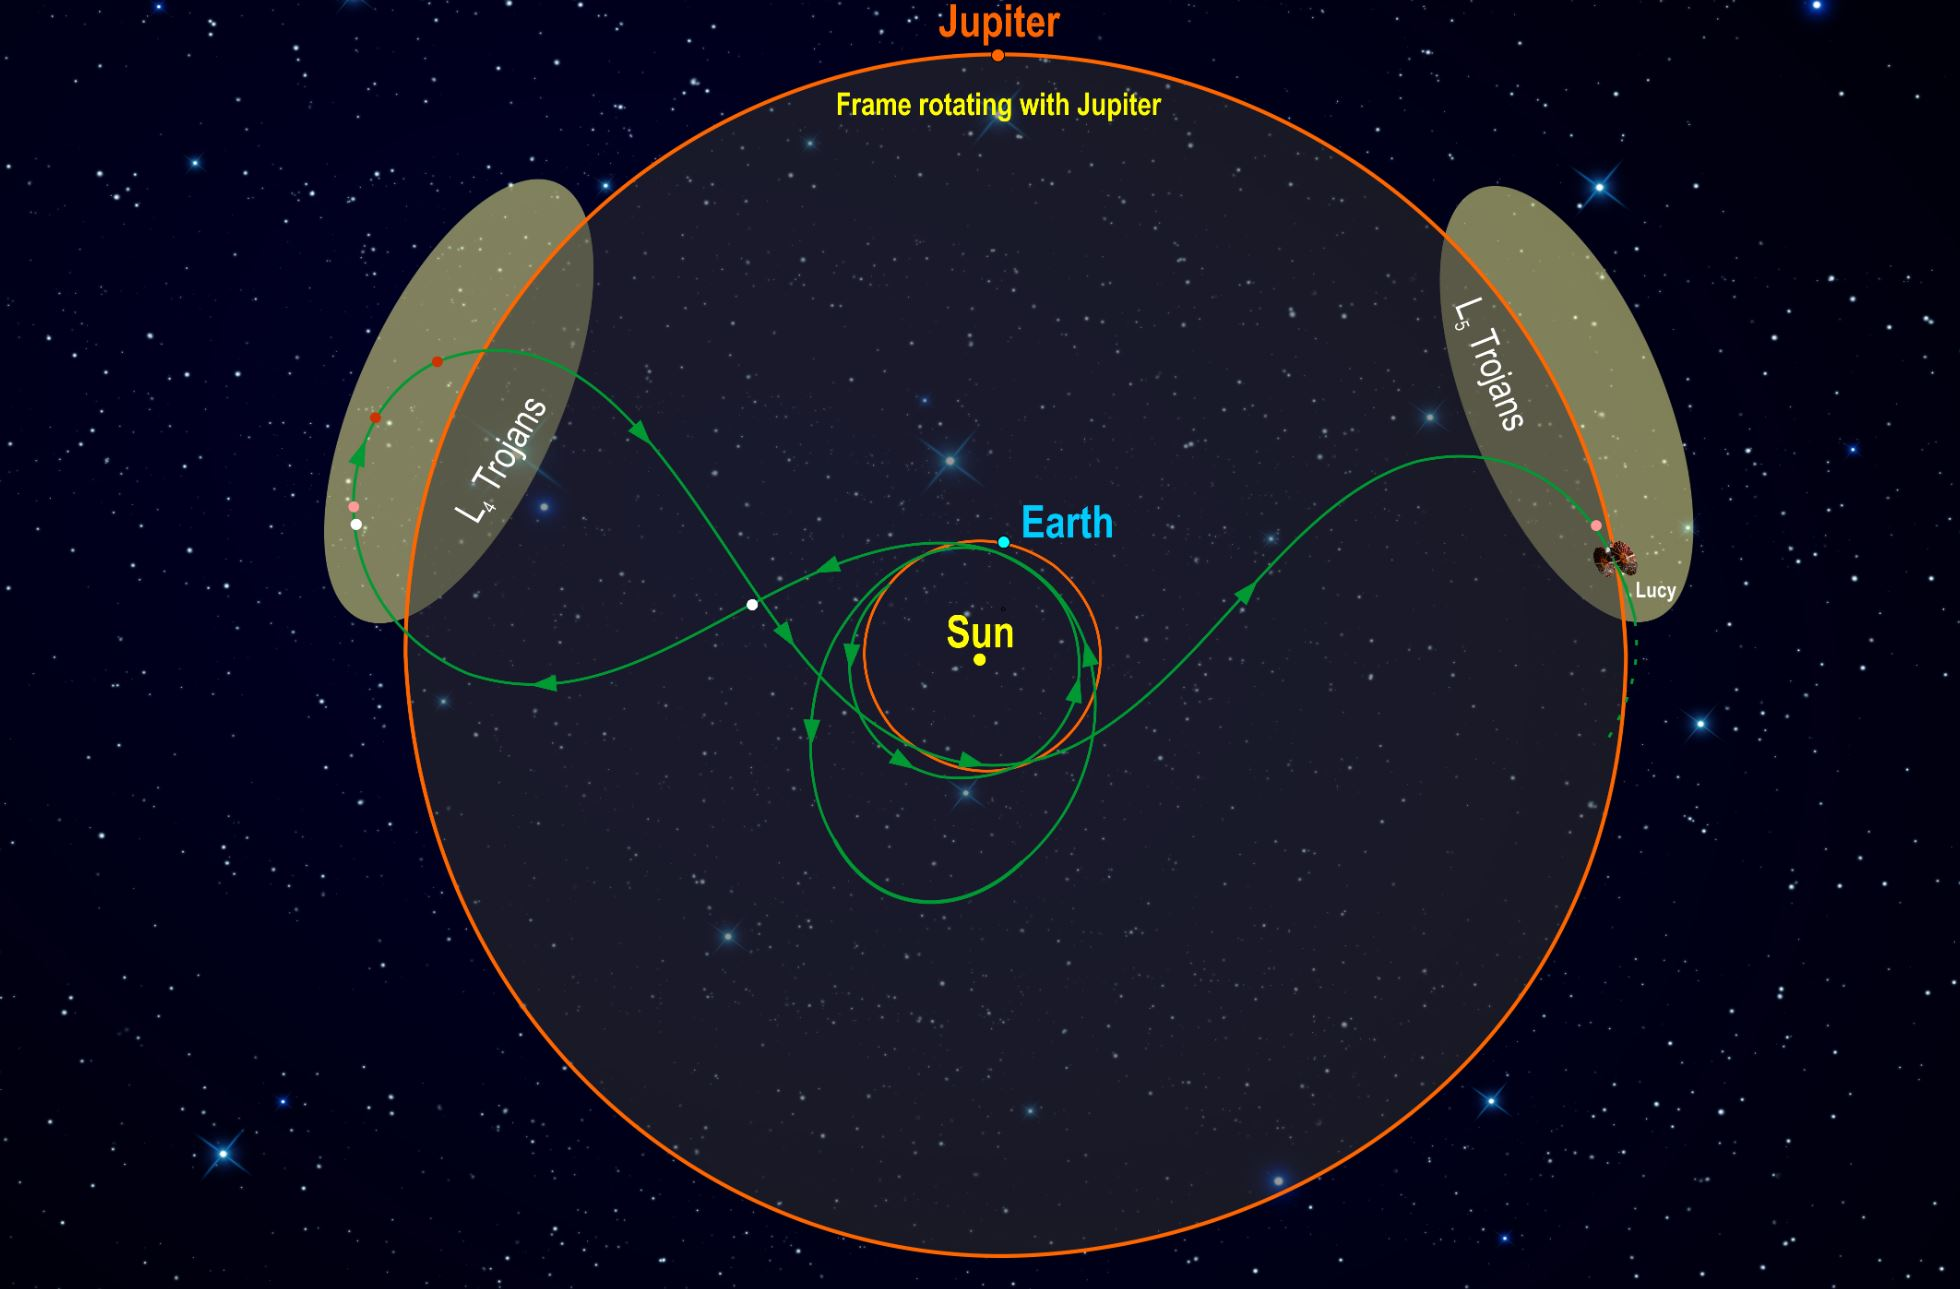 This diagram illustrates Lucy's orbital path. The spacecraft's path (green) is shown in a frame of reference where Jupiter remains stationary, giving the trajectory its pretzel-like shape. After launch in October 2021, Lucy has two close Earth flybys before encountering its Trojan targets. In the L4 cloud Lucy will fly by (3548) Eurybates (white), (15094) Polymele (pink), (11351) Leucus (red), and (21900) Orus (red) from 2027-2028. After diving past Earth again Lucy will visit the L5 cloud and encounter the (617) Patroclus-Menoetius binary (pink) in 2033. As a bonus, in 2025 on the way to the L4, Lucy flies by a small Main Belt asteroid, (52246) Donaldjohanson (white), named for the discoverer of the Lucy fossil. After flying by the Patroclus-Menoetius binary in 2033, Lucy will continue cycling between the two Trojan clouds every six years. - Image Credits: Southwest Research Institute